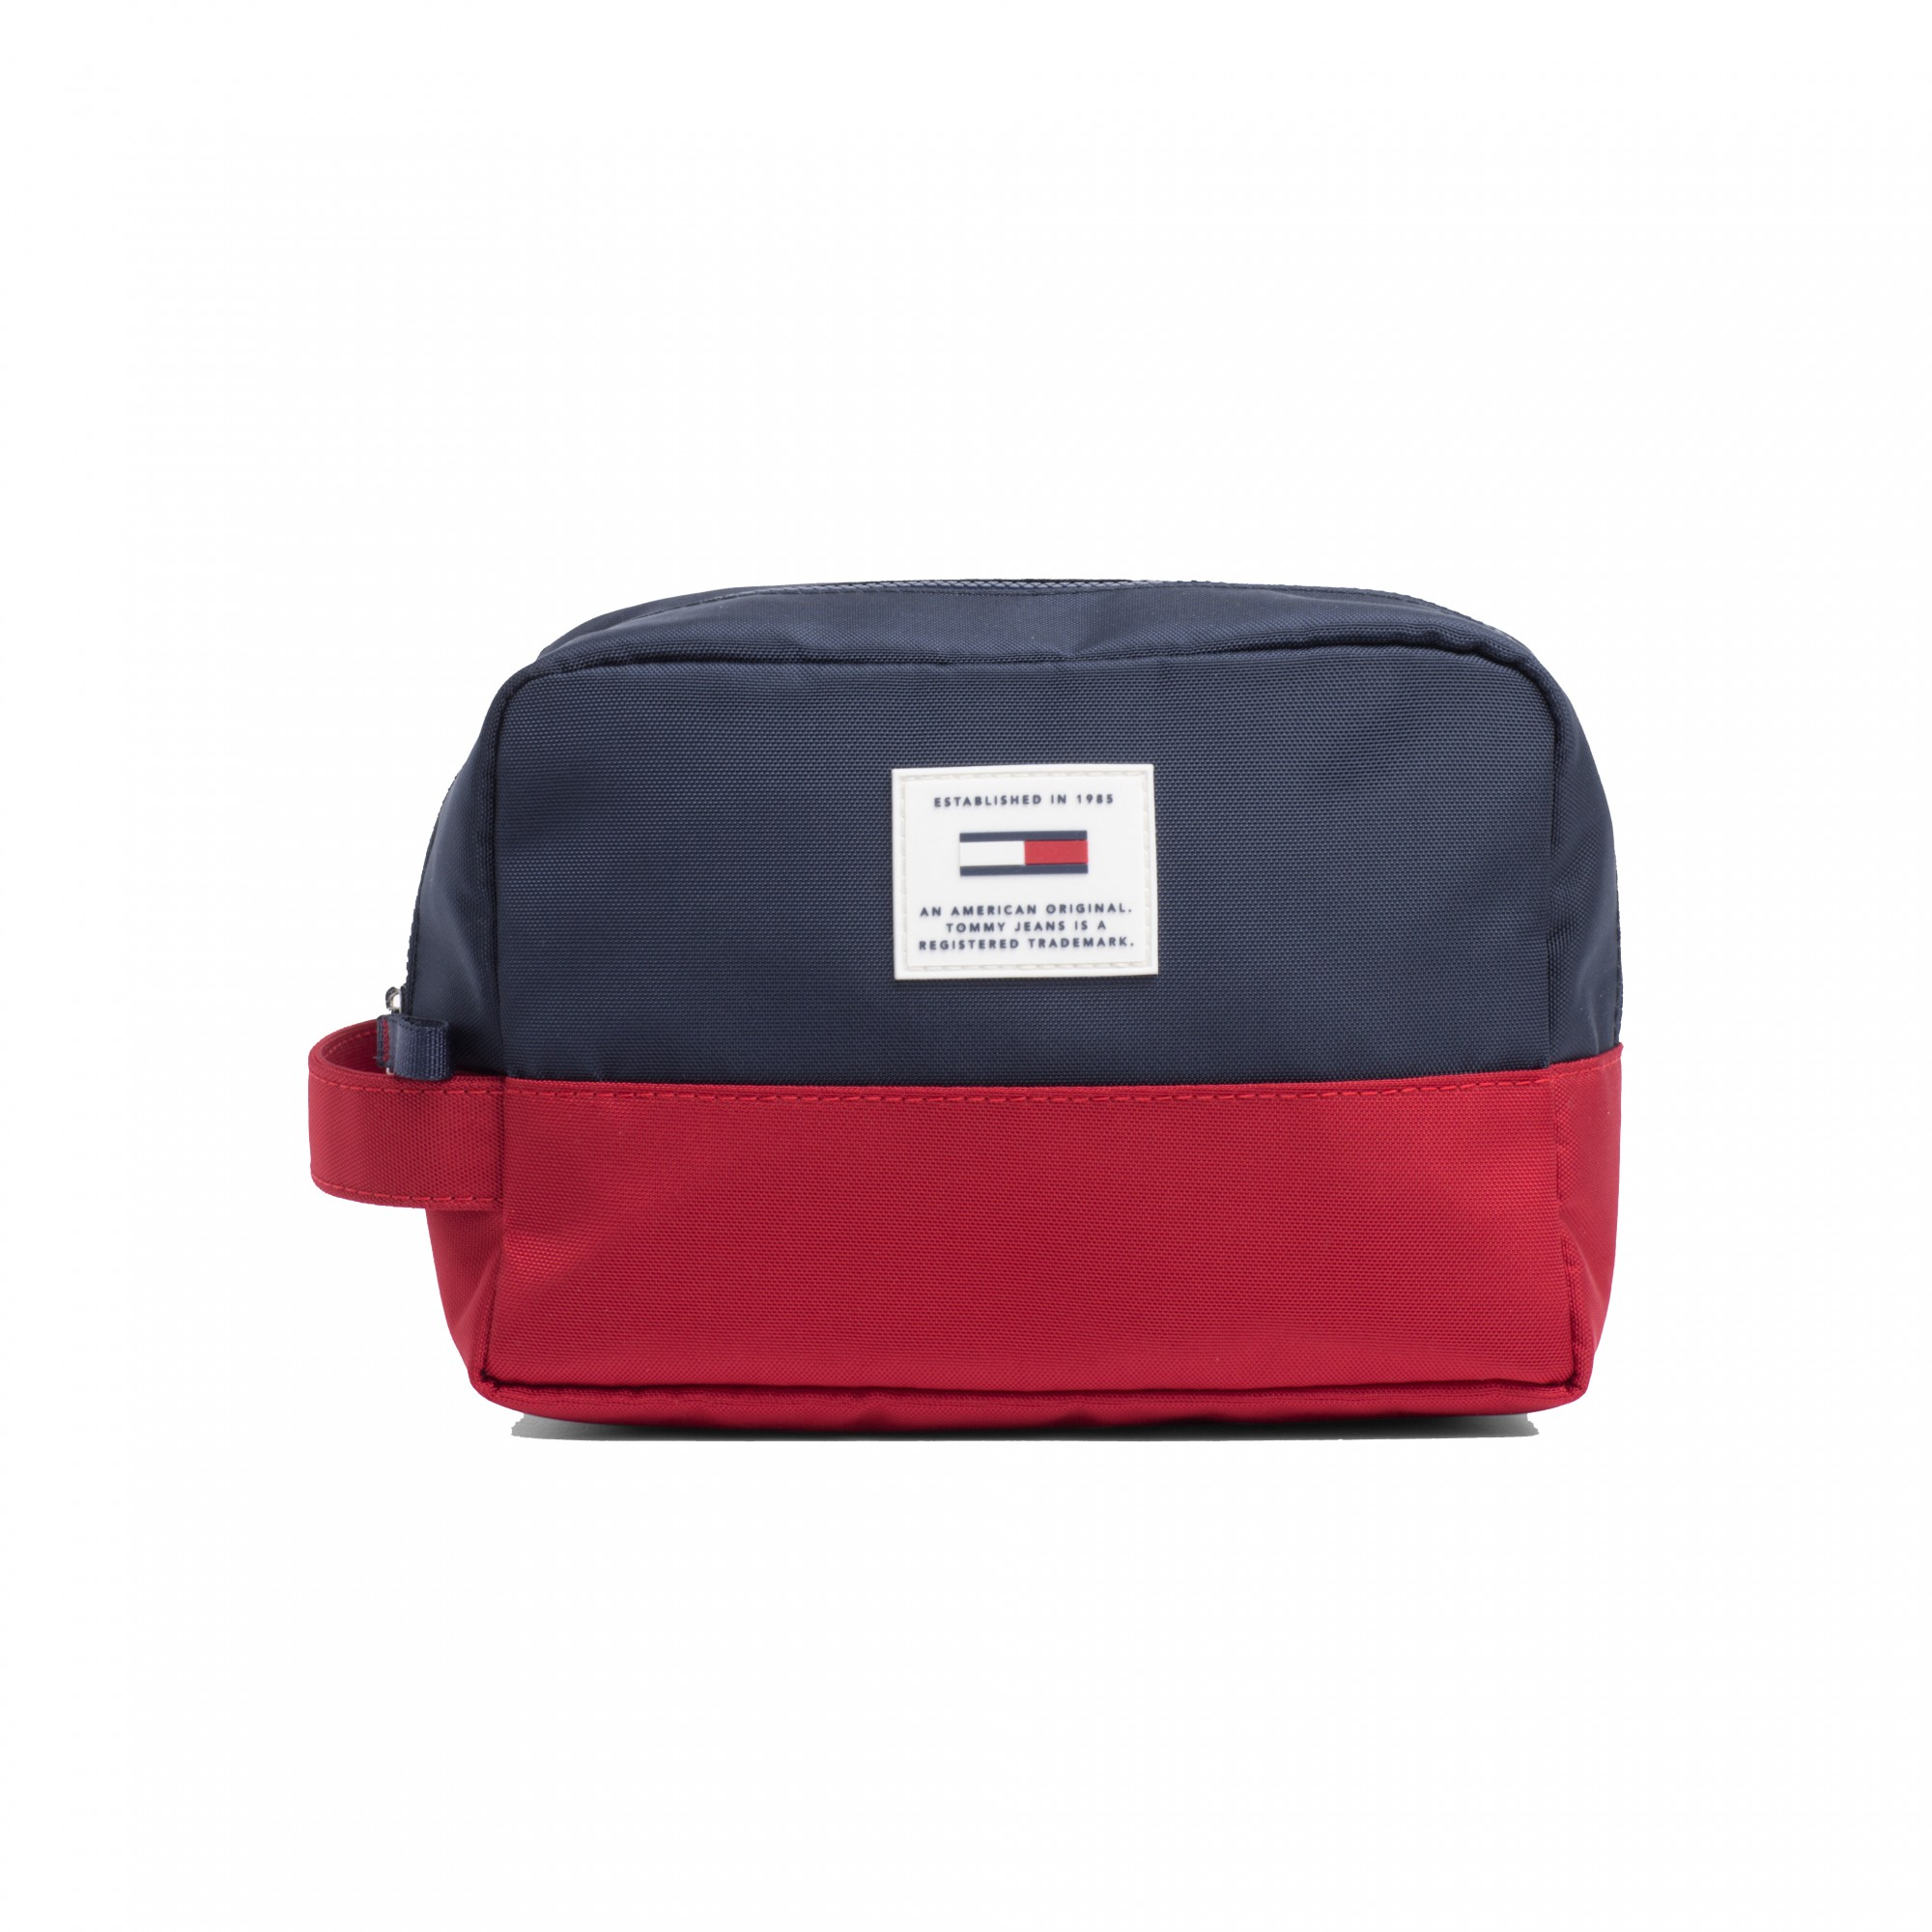 58847b2c5 TOMMY HILFIGER toiletry bag AM04600 901 CORPORATE